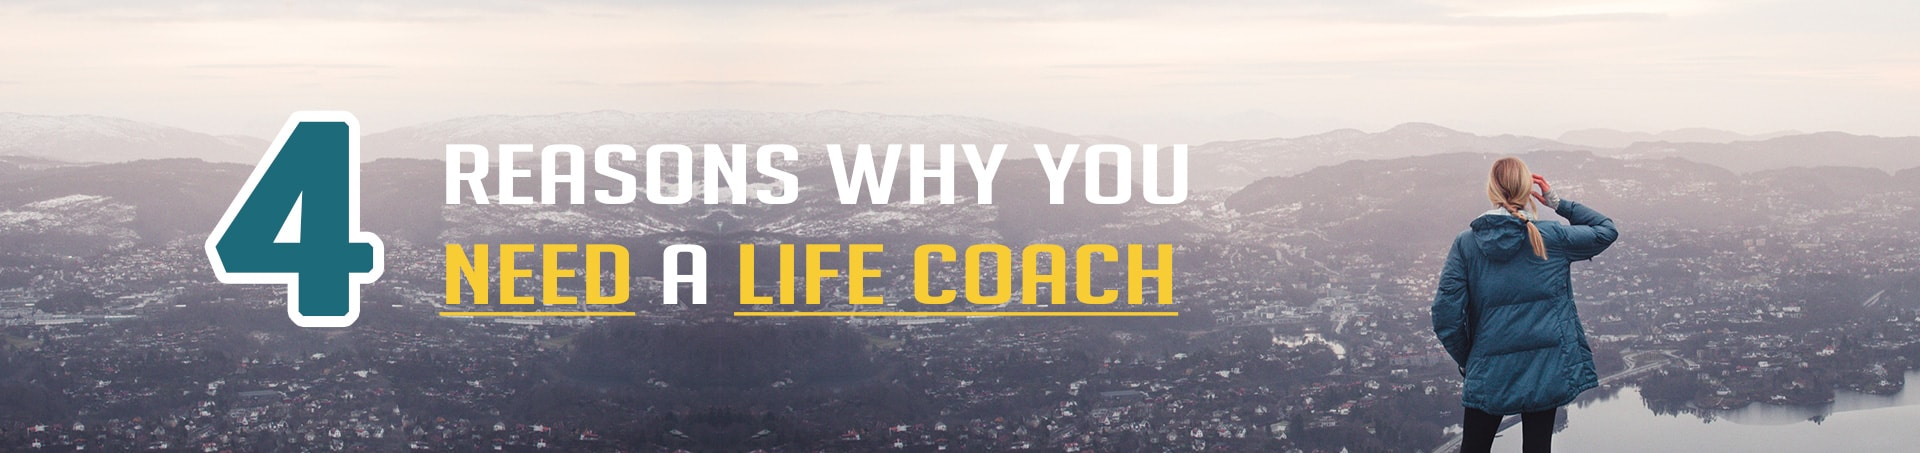 Aha Training & Development 4-Reasons-You-Need-a-Life-Coach